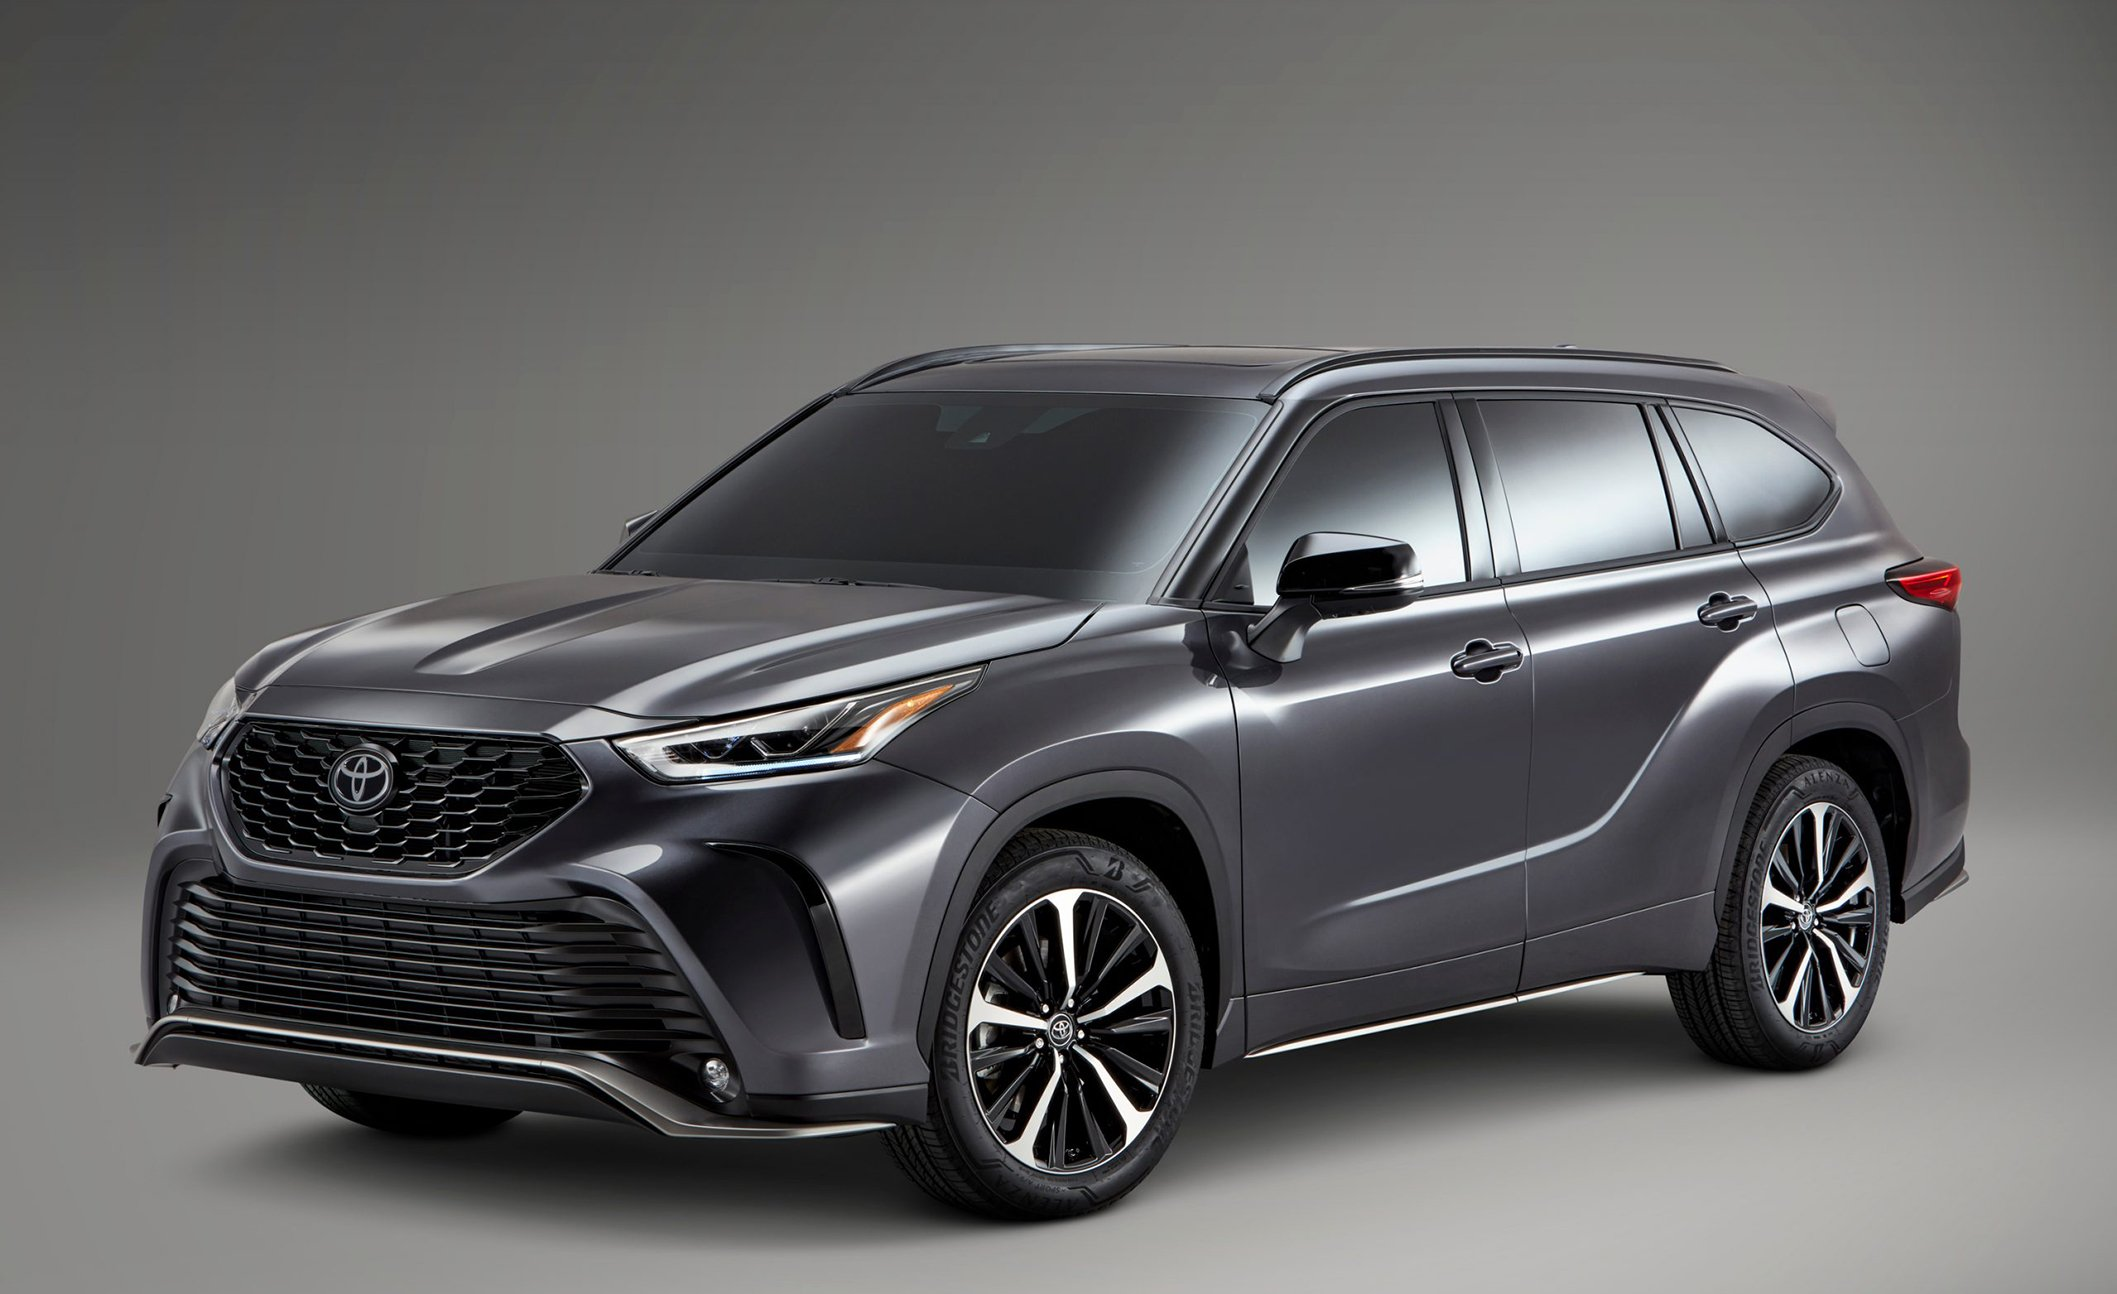 2021 Toyota Highlander XSE Revealed: What's Different ...